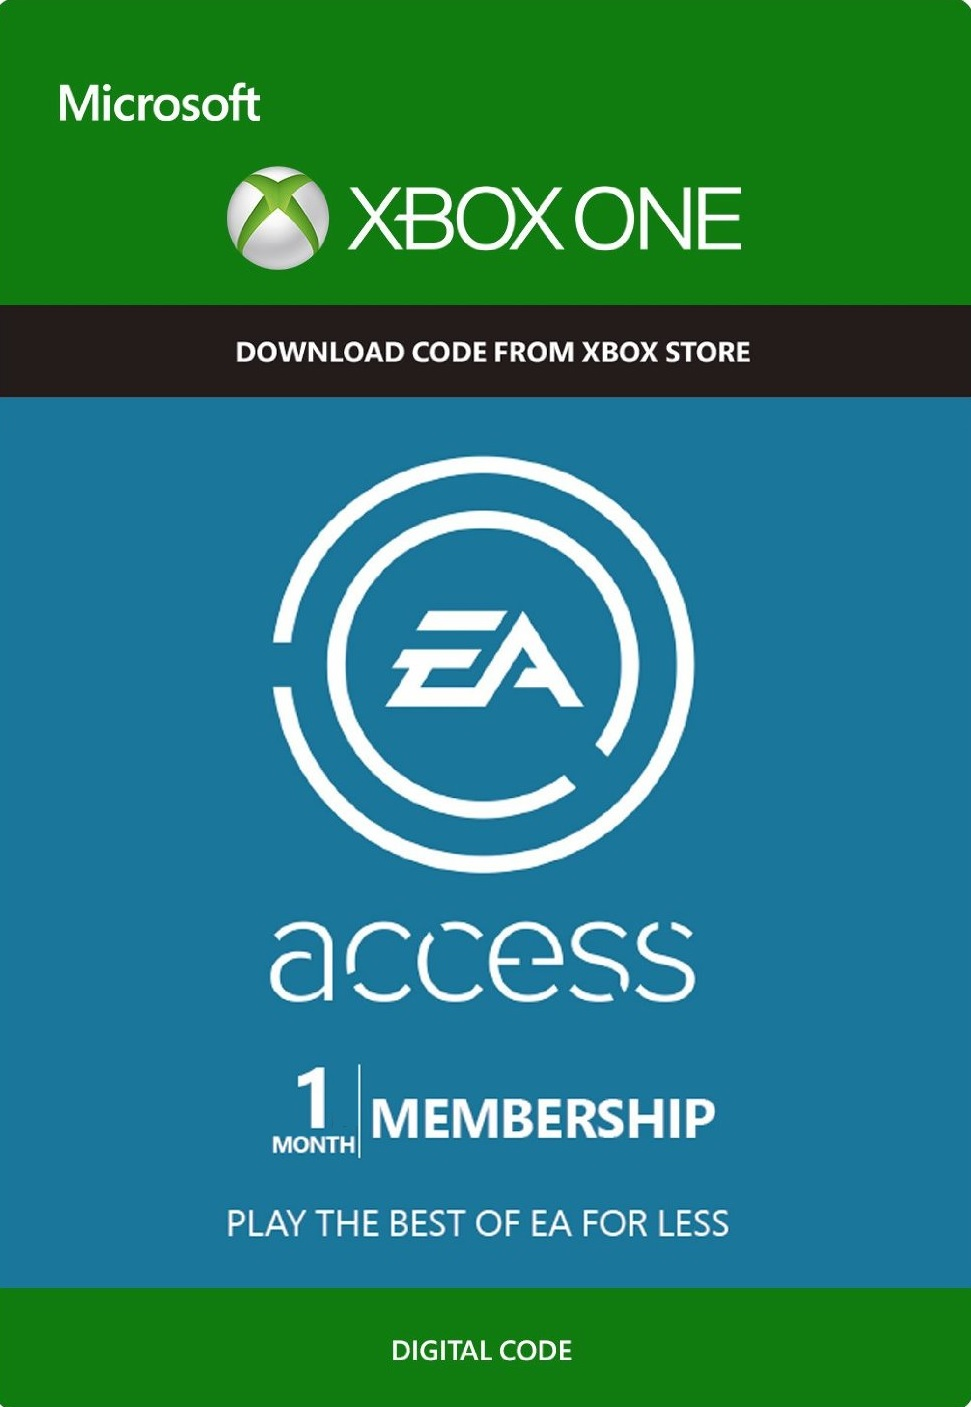 EA ACCESS - 1 MONTH (XBOX ONE) | SCAN